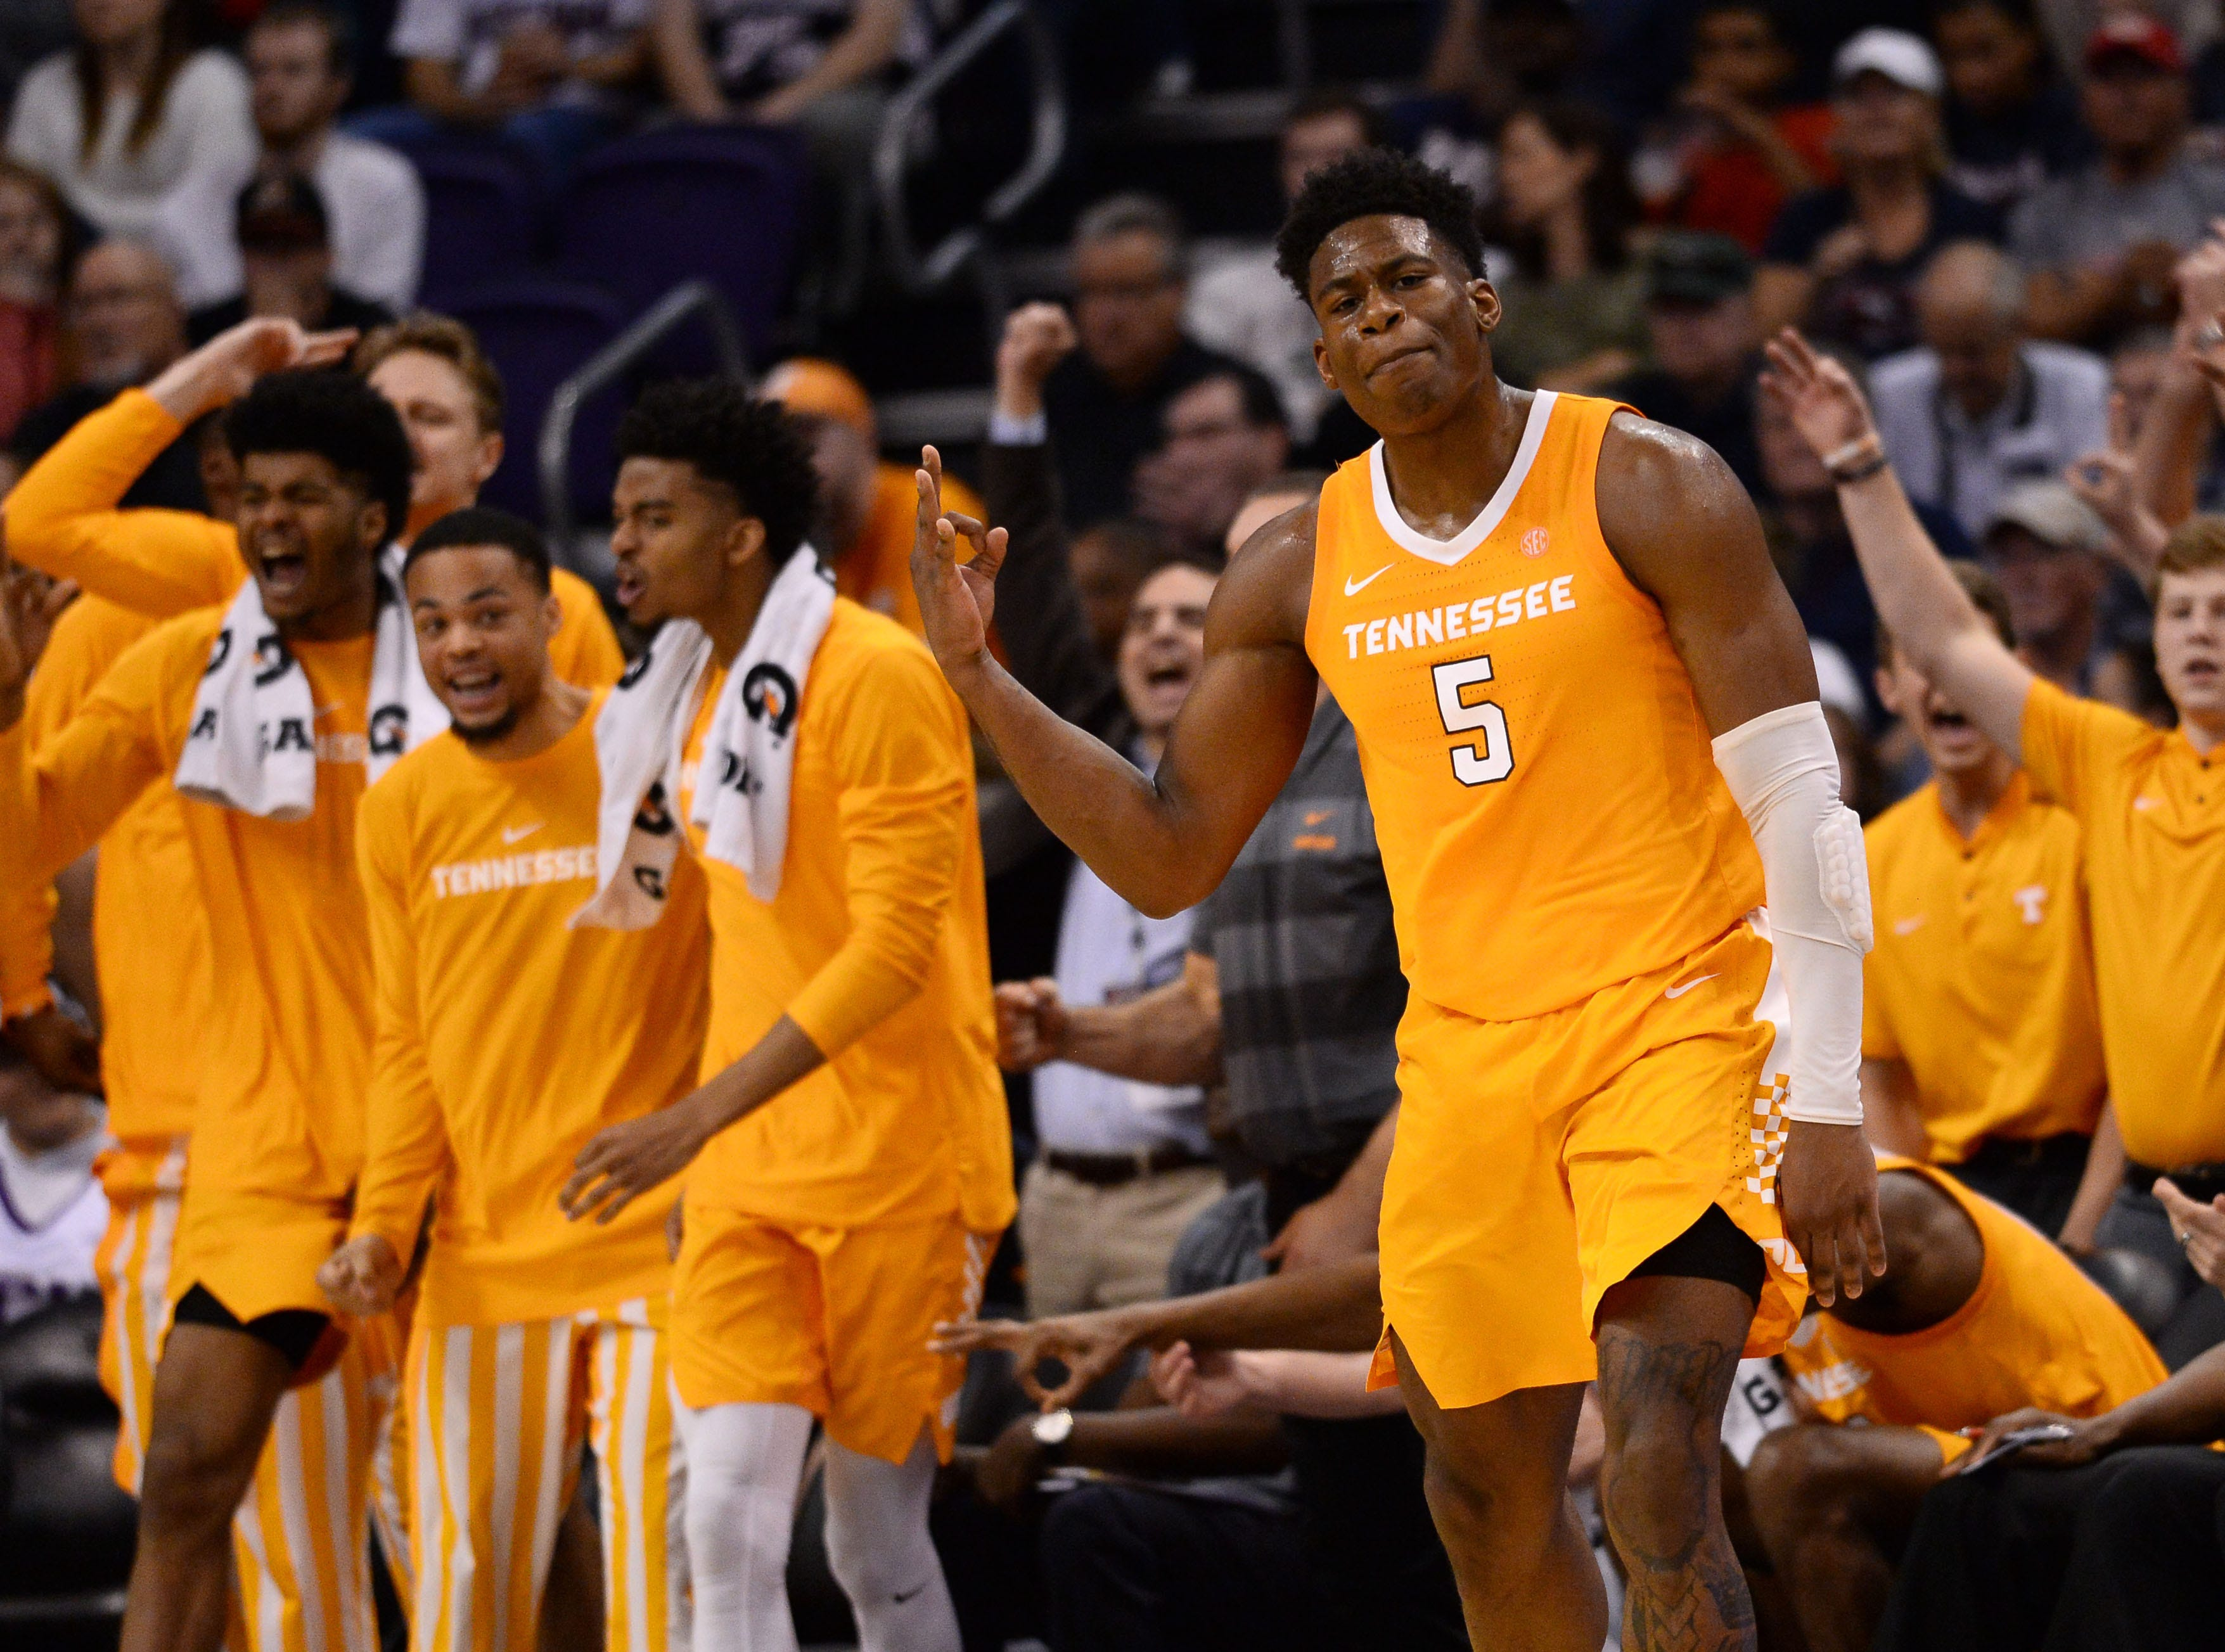 Dec 9, 2018; Phoenix, AZ, USA; Tennessee Volunteers guard Admiral Schofield (5) celebrates a three point basket against the Gonzaga Bulldogs during the second half at Talking Stick Resort Arena.